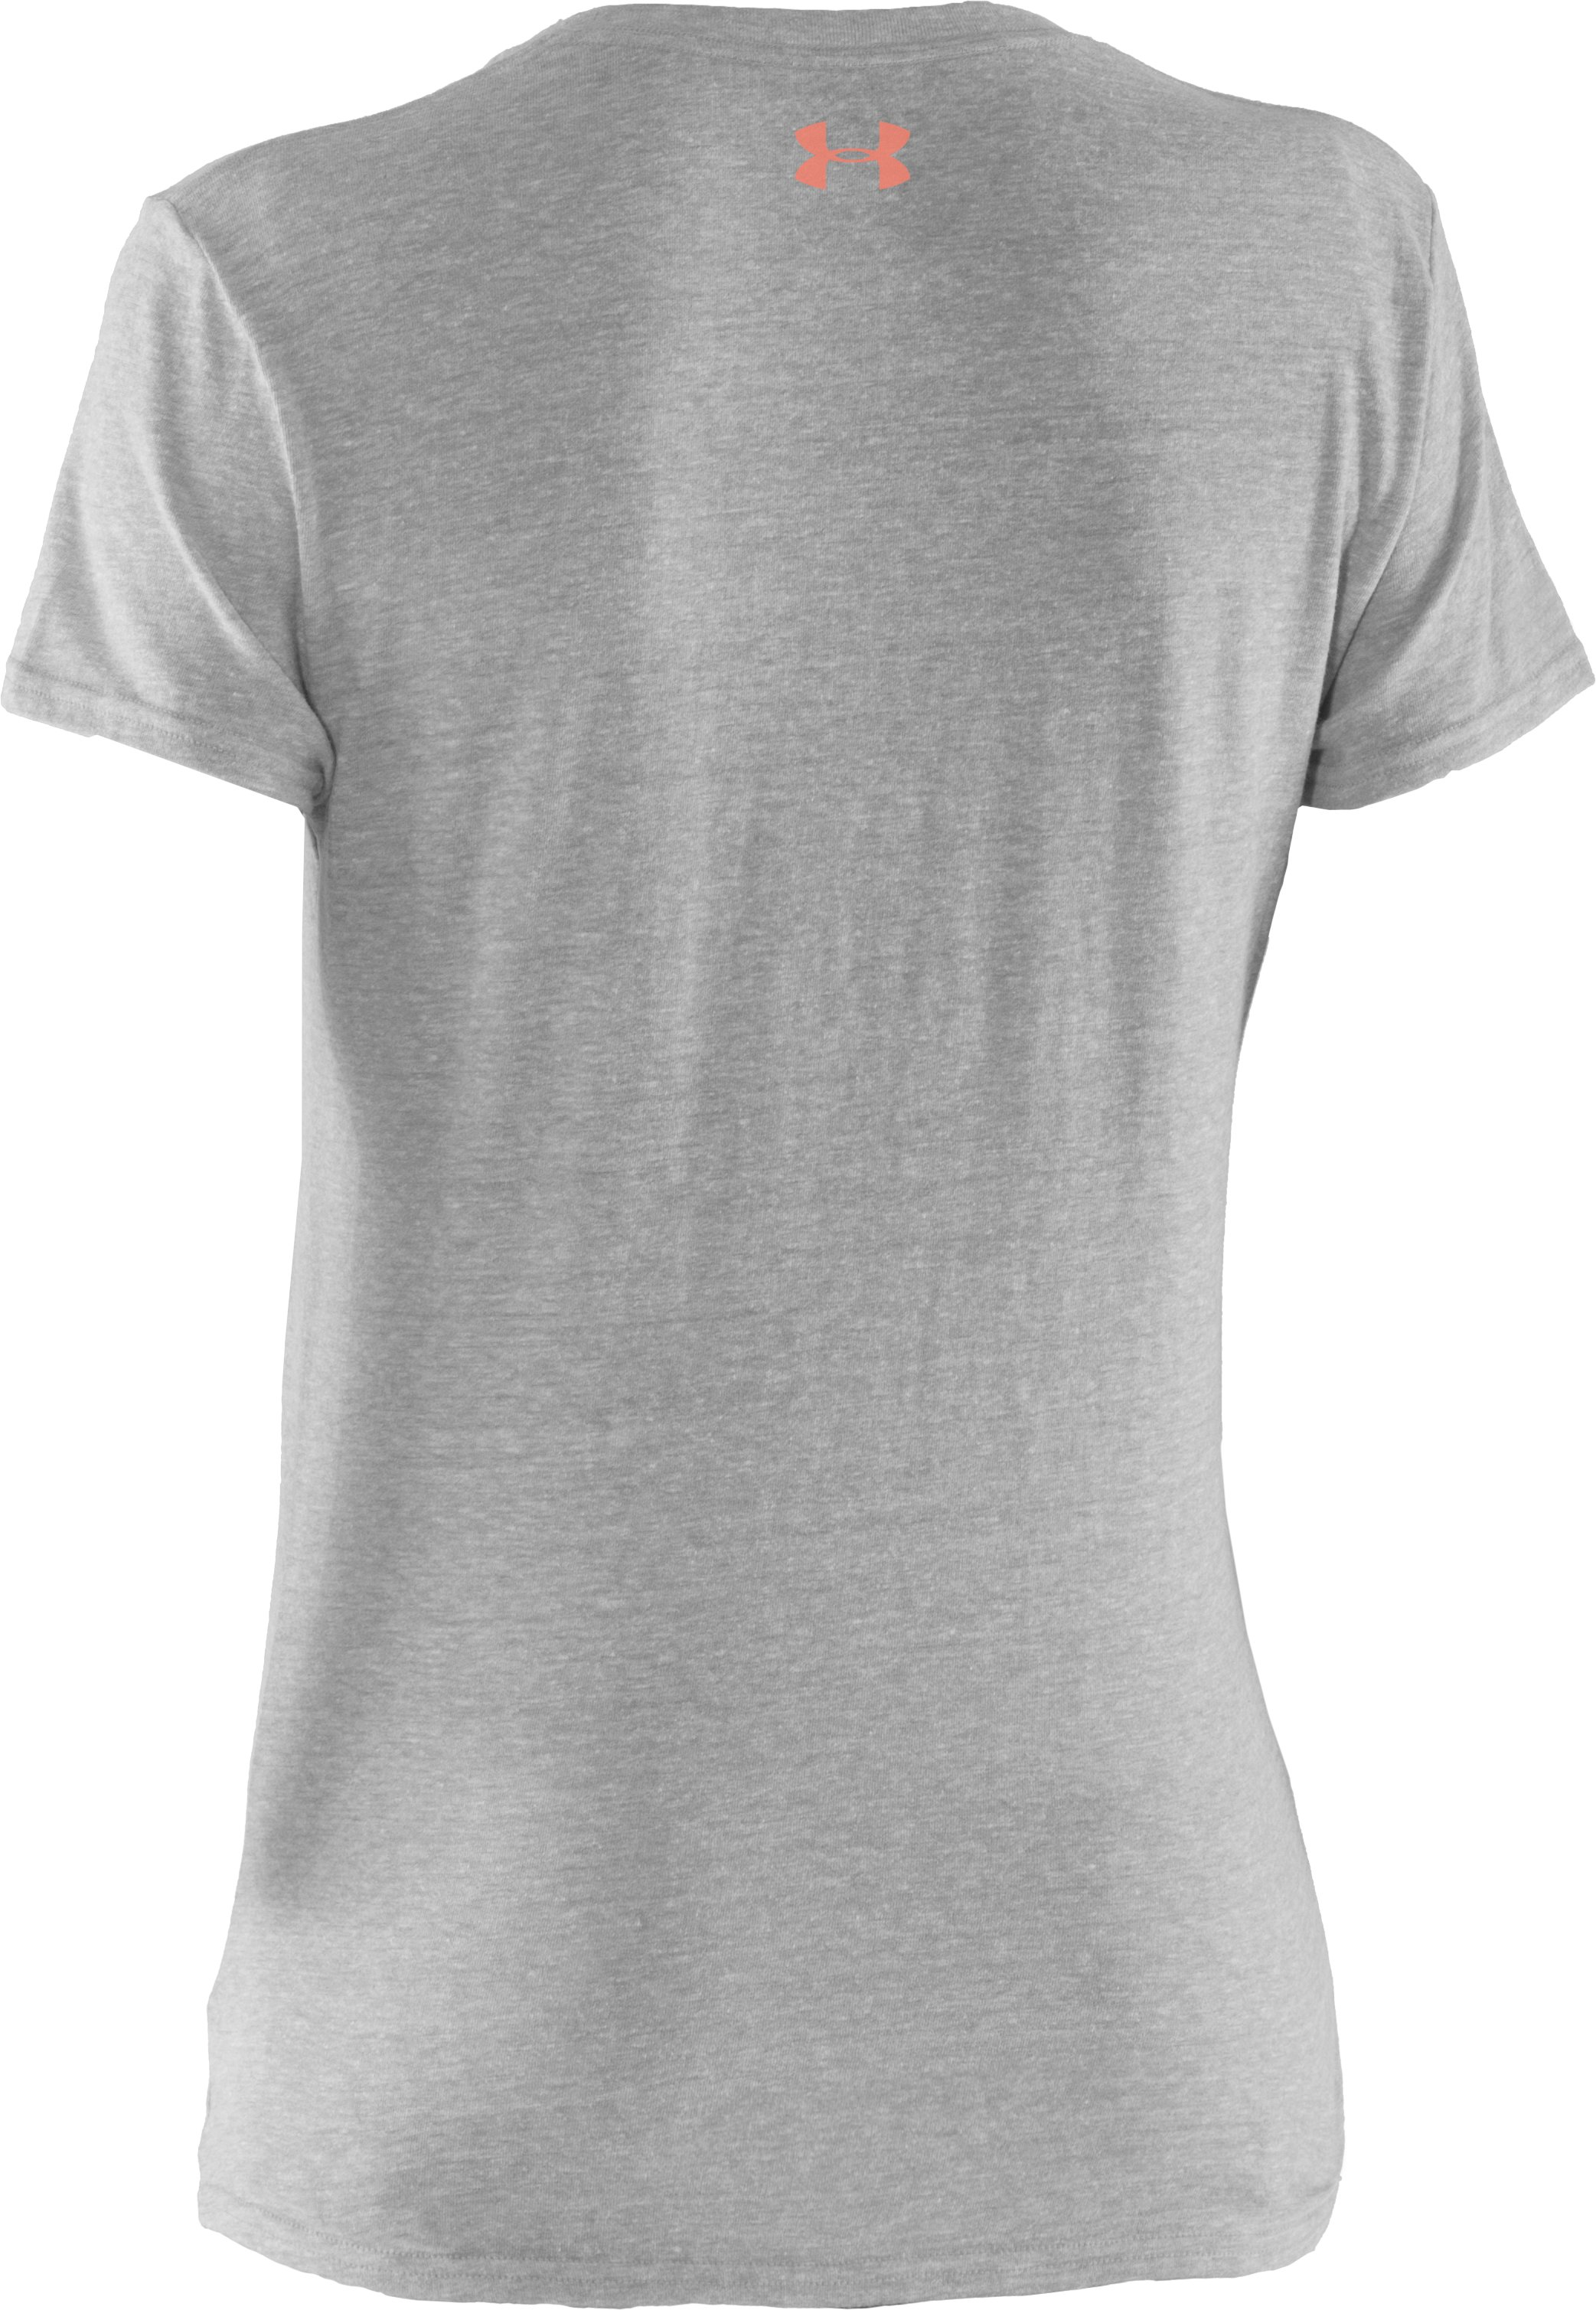 Women's UA Wish Will Graphic T-Shirt, True Gray Heather